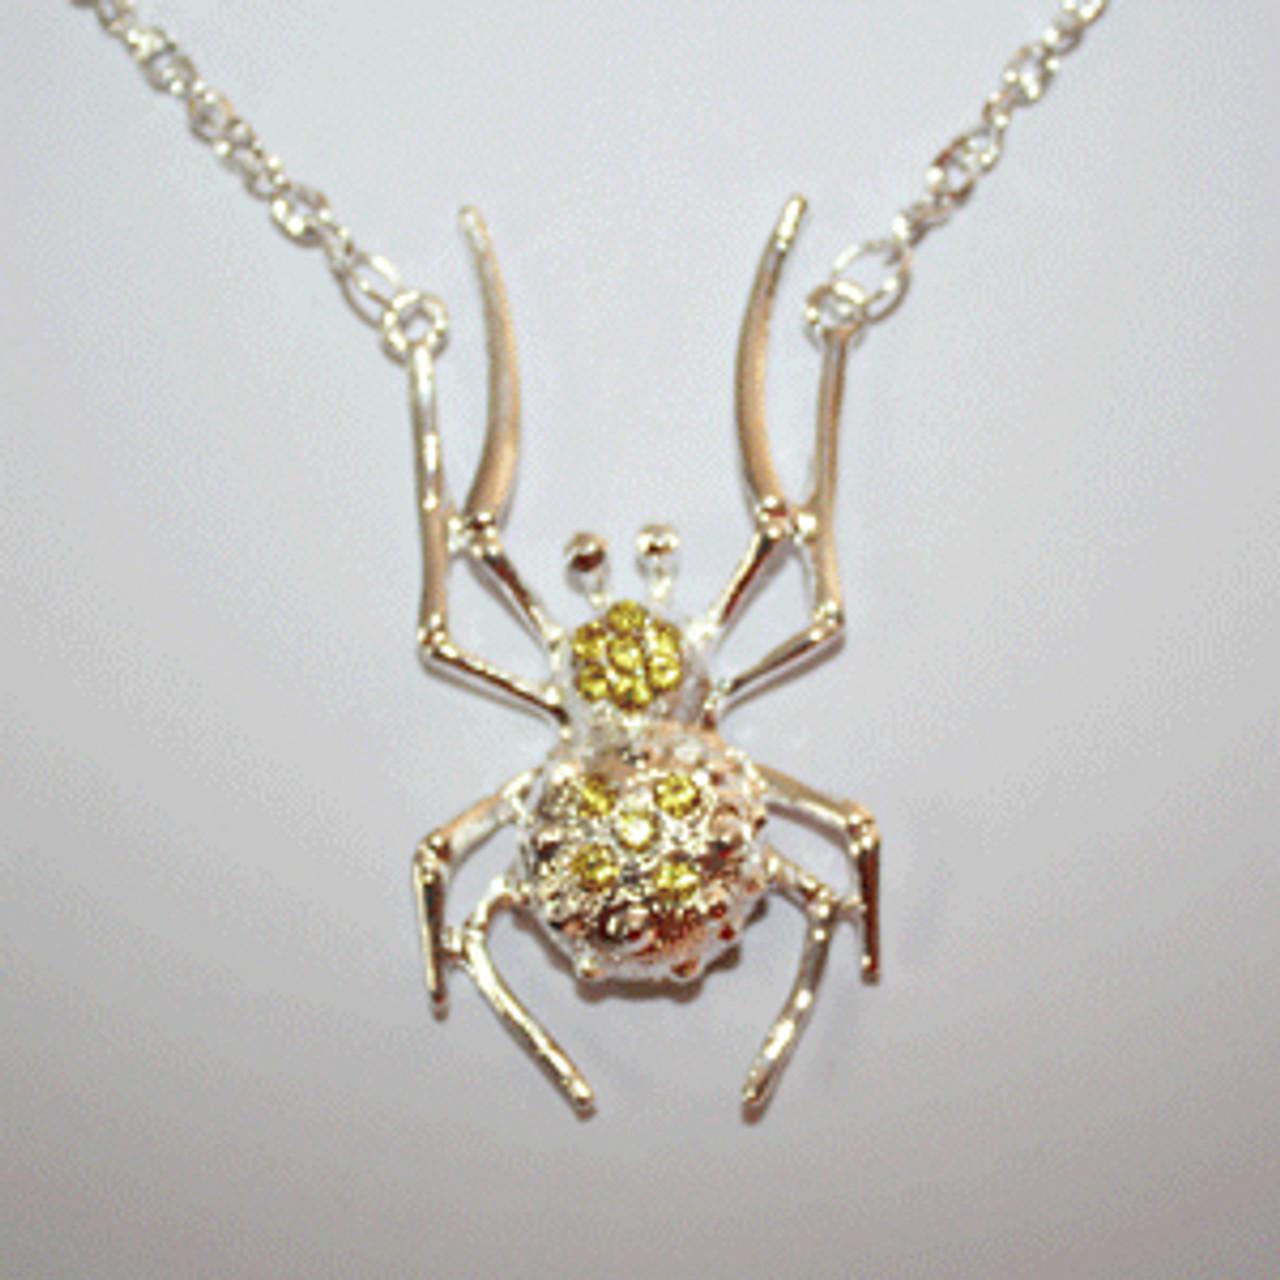 Spider necklace for costumes